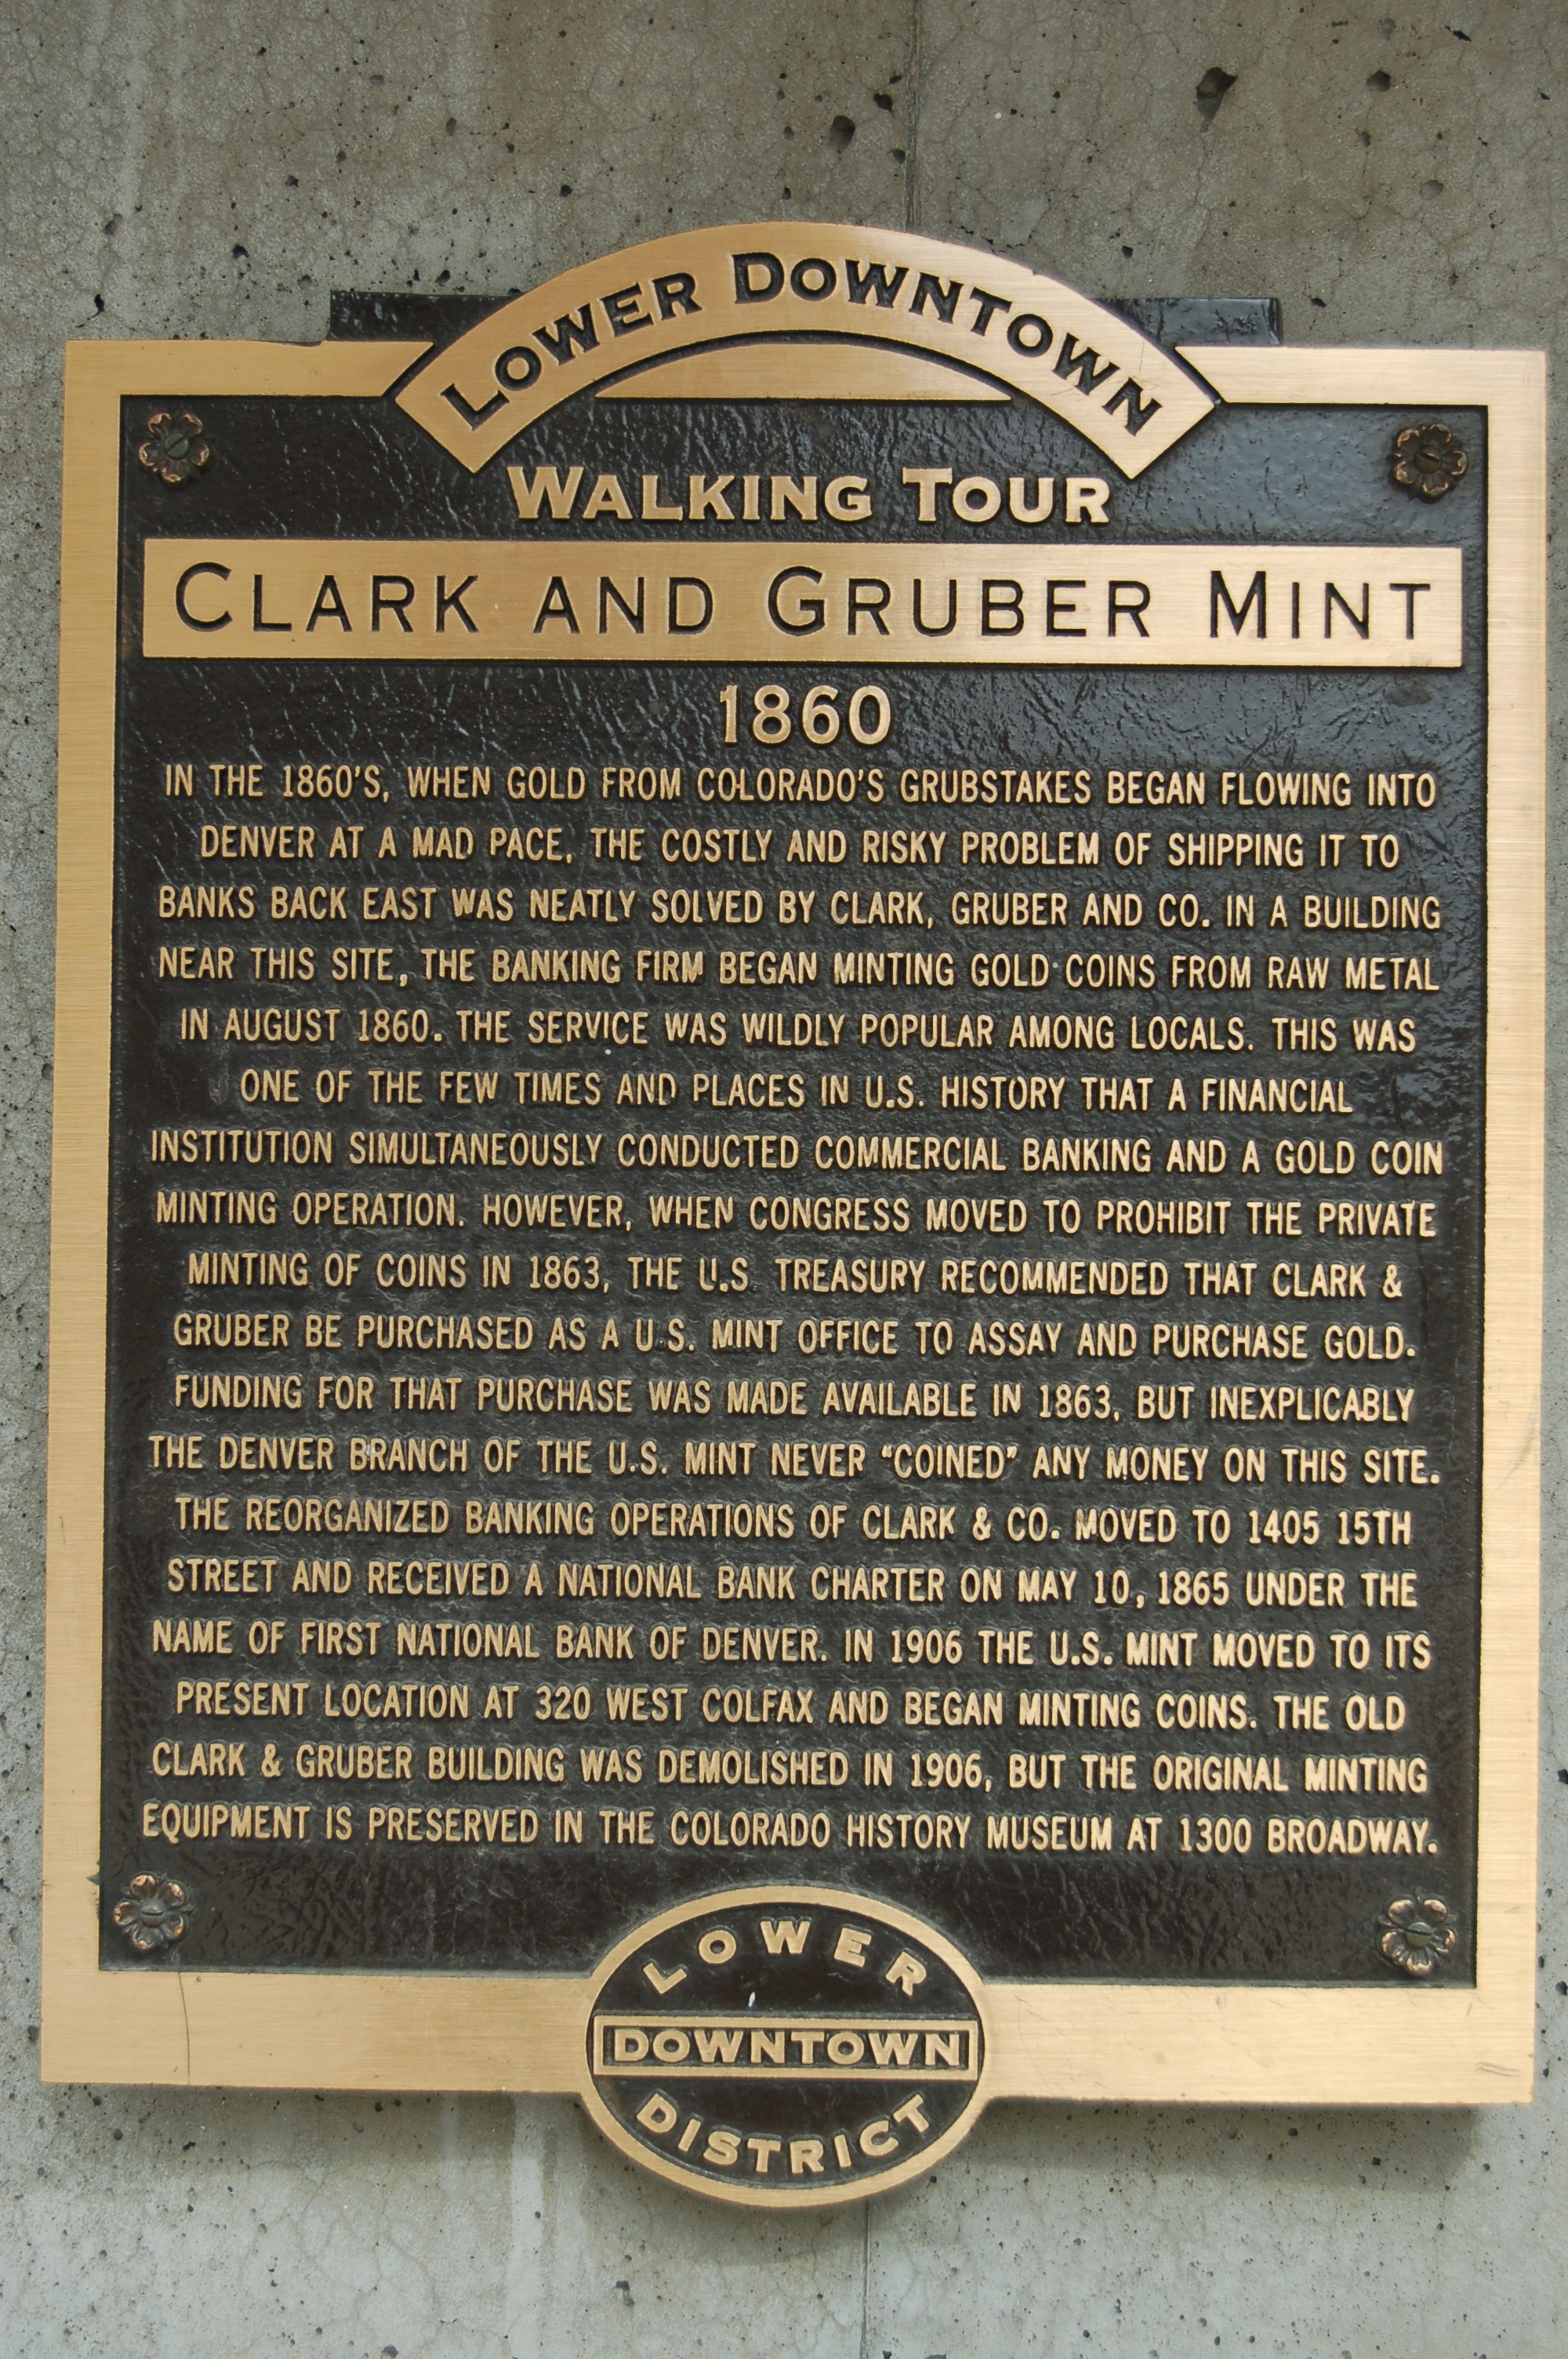 Clark and Gruber Mint historical marker